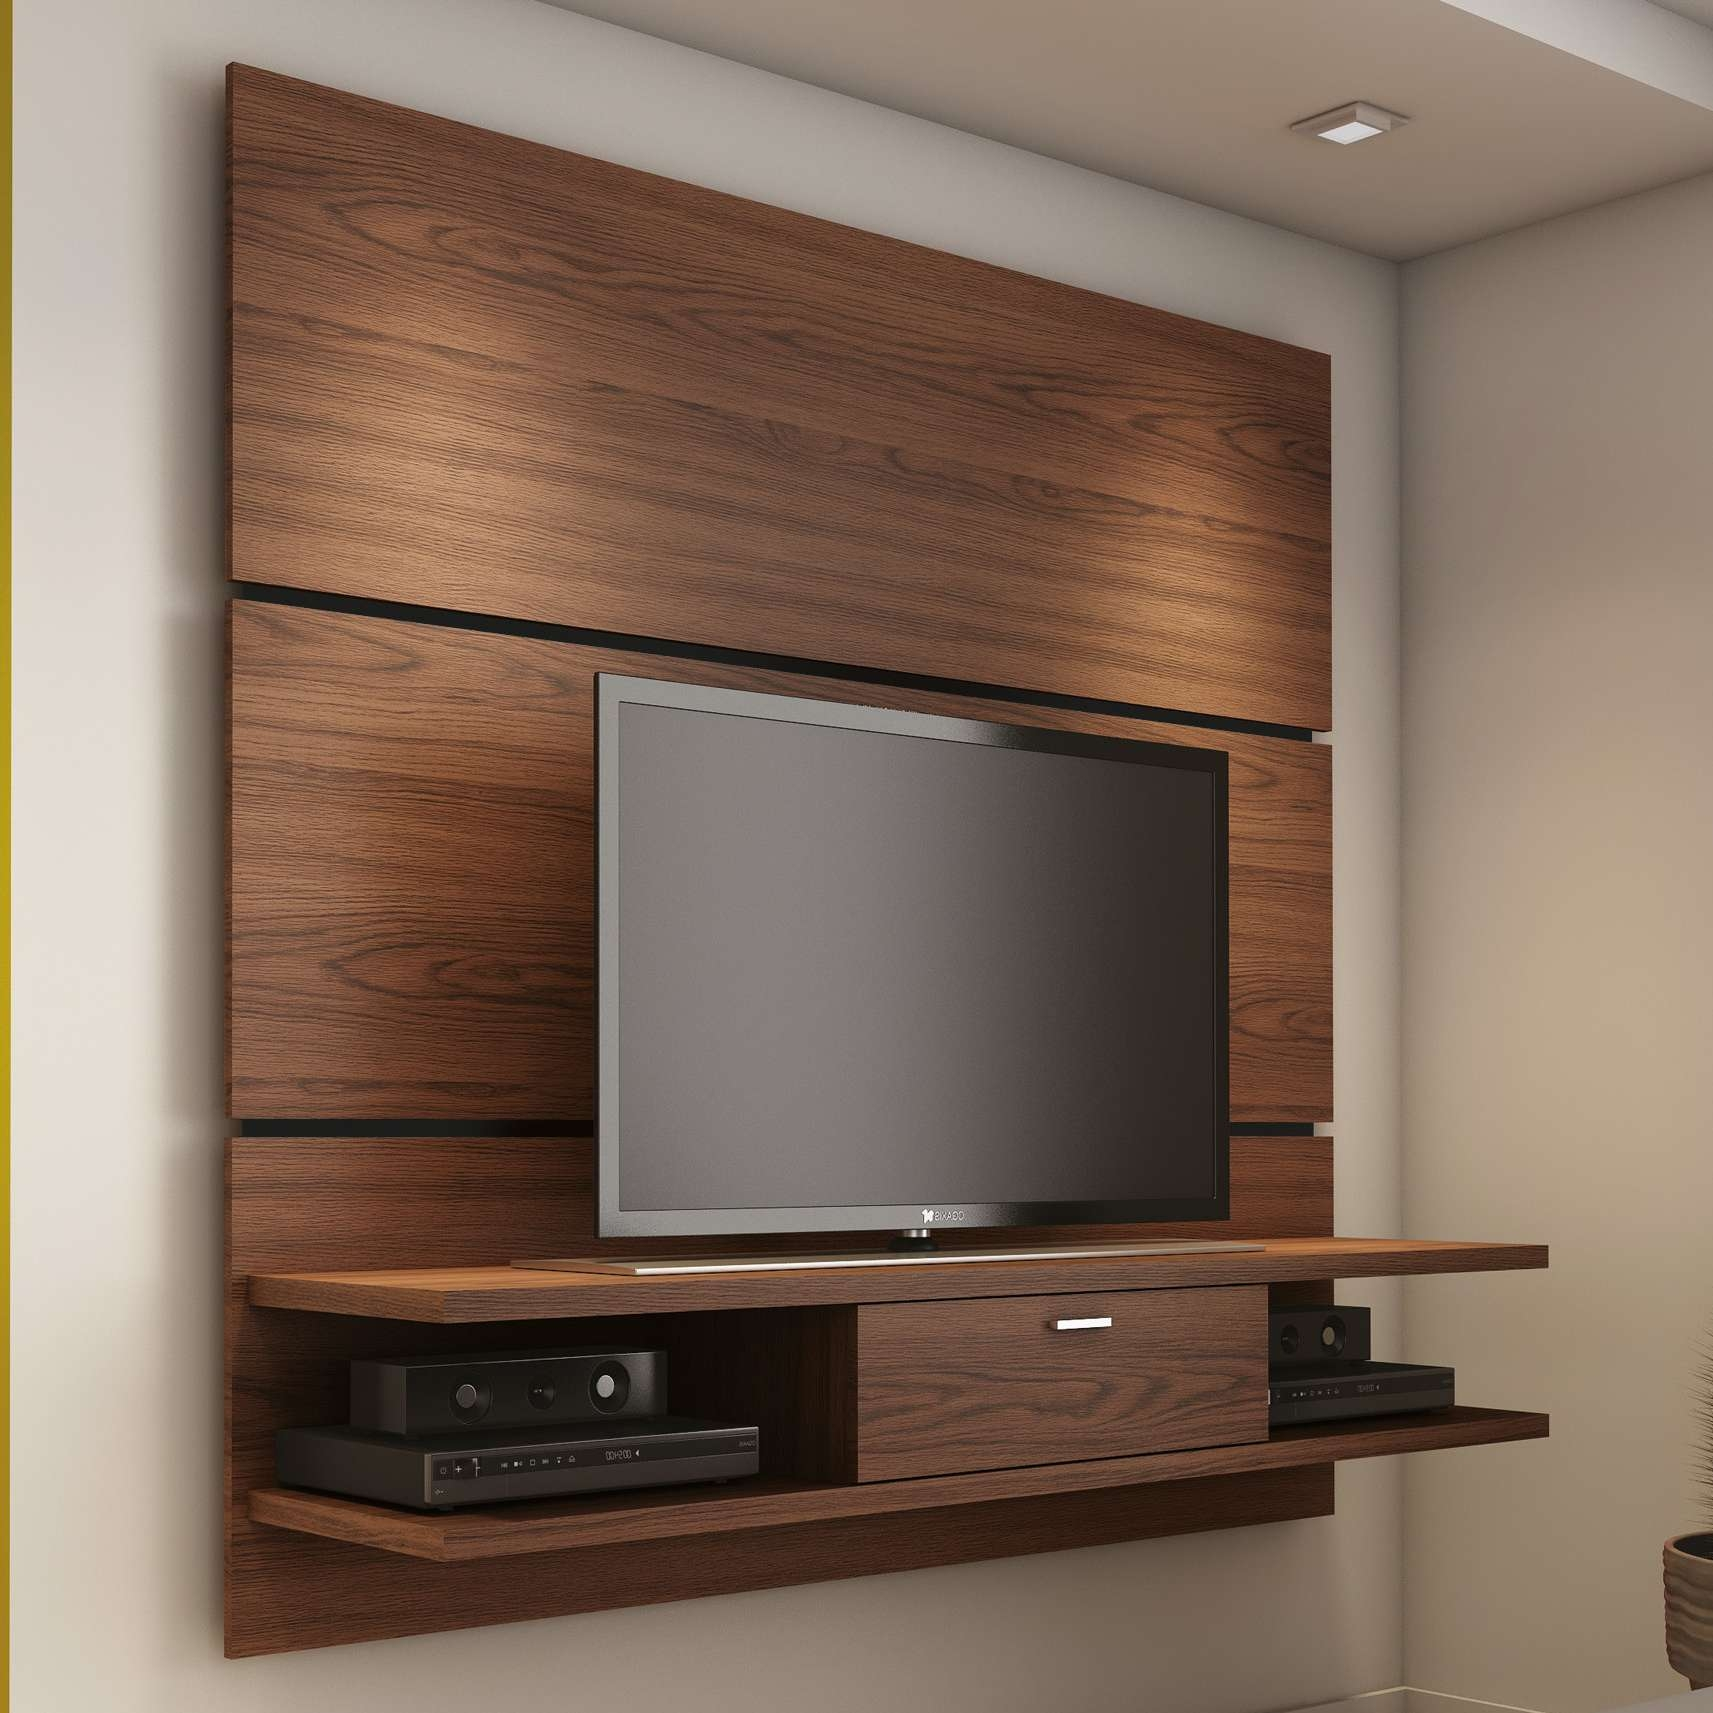 Winsome Wooden Brown Stands Tamonie Small Tv Stand Jennifer With Regard To Wayfair Corner Tv Stands (View 15 of 15)